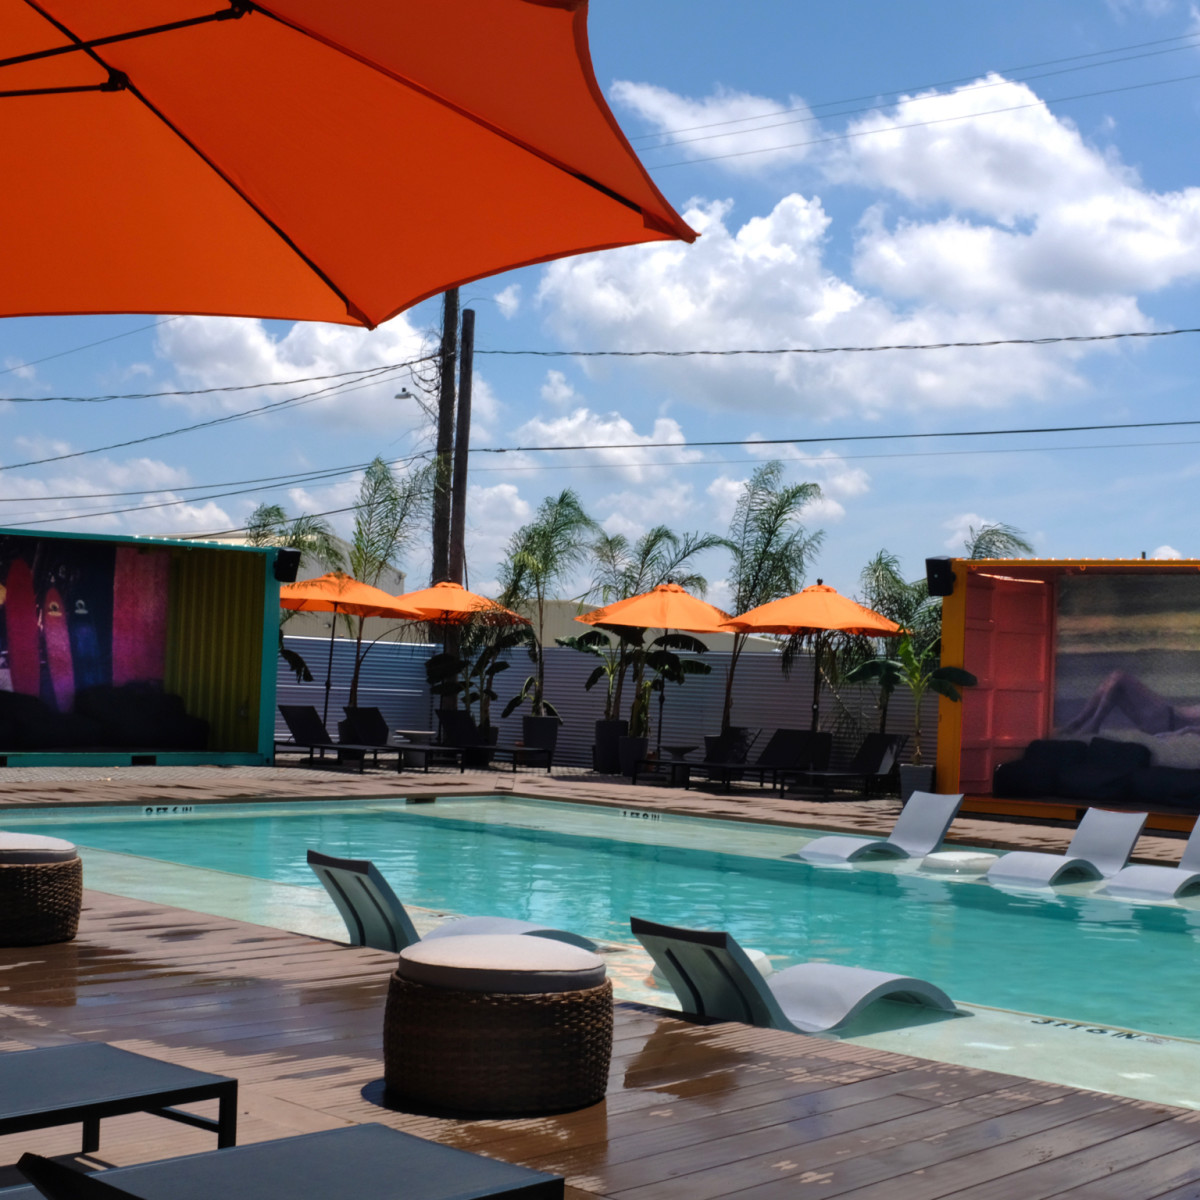 Dive Into Highly Anticipated Pool Bar, Now Open Near